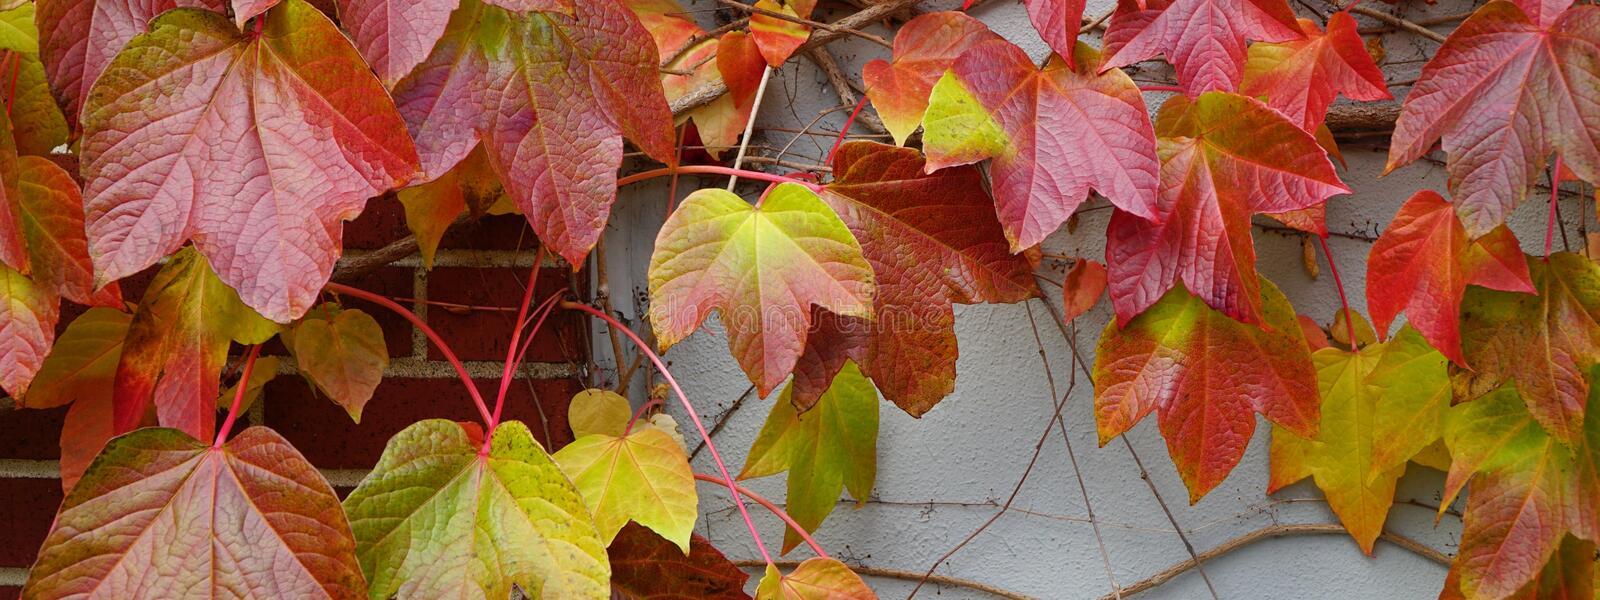 Climbing vine in fall colors royalty free stock image